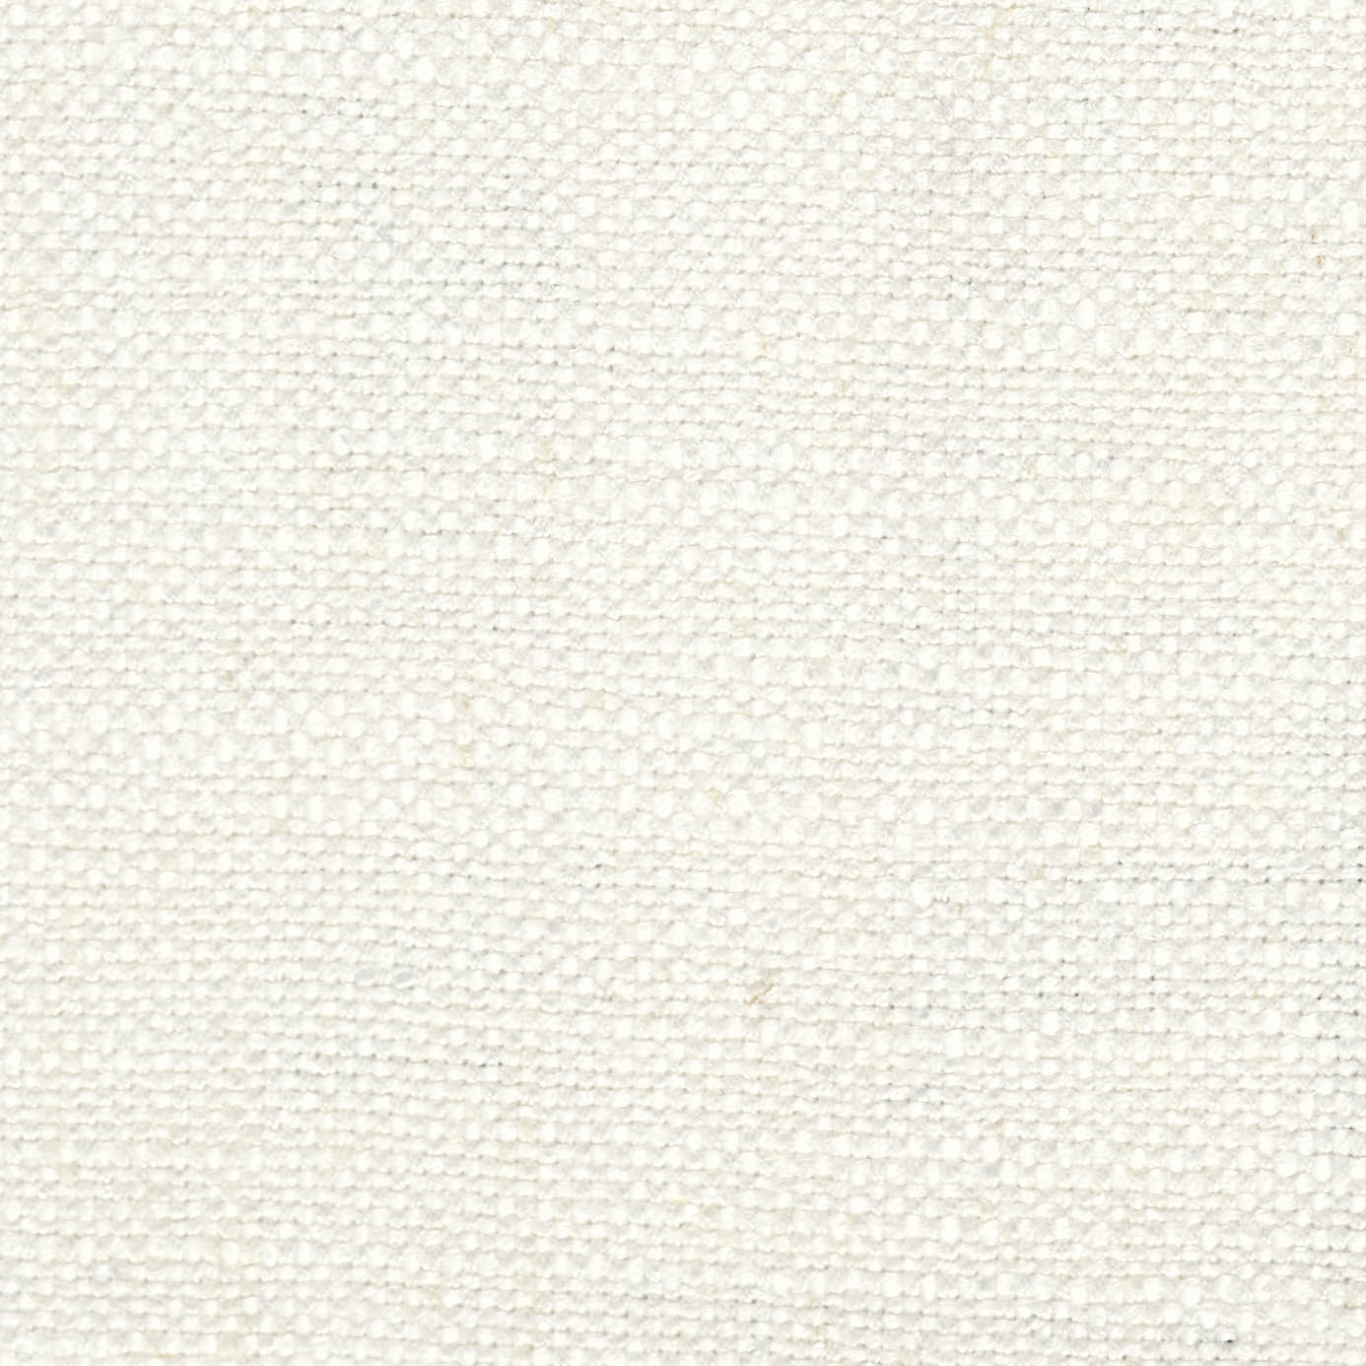 Image of Harlequin Fission Porcelain Fabric 440302